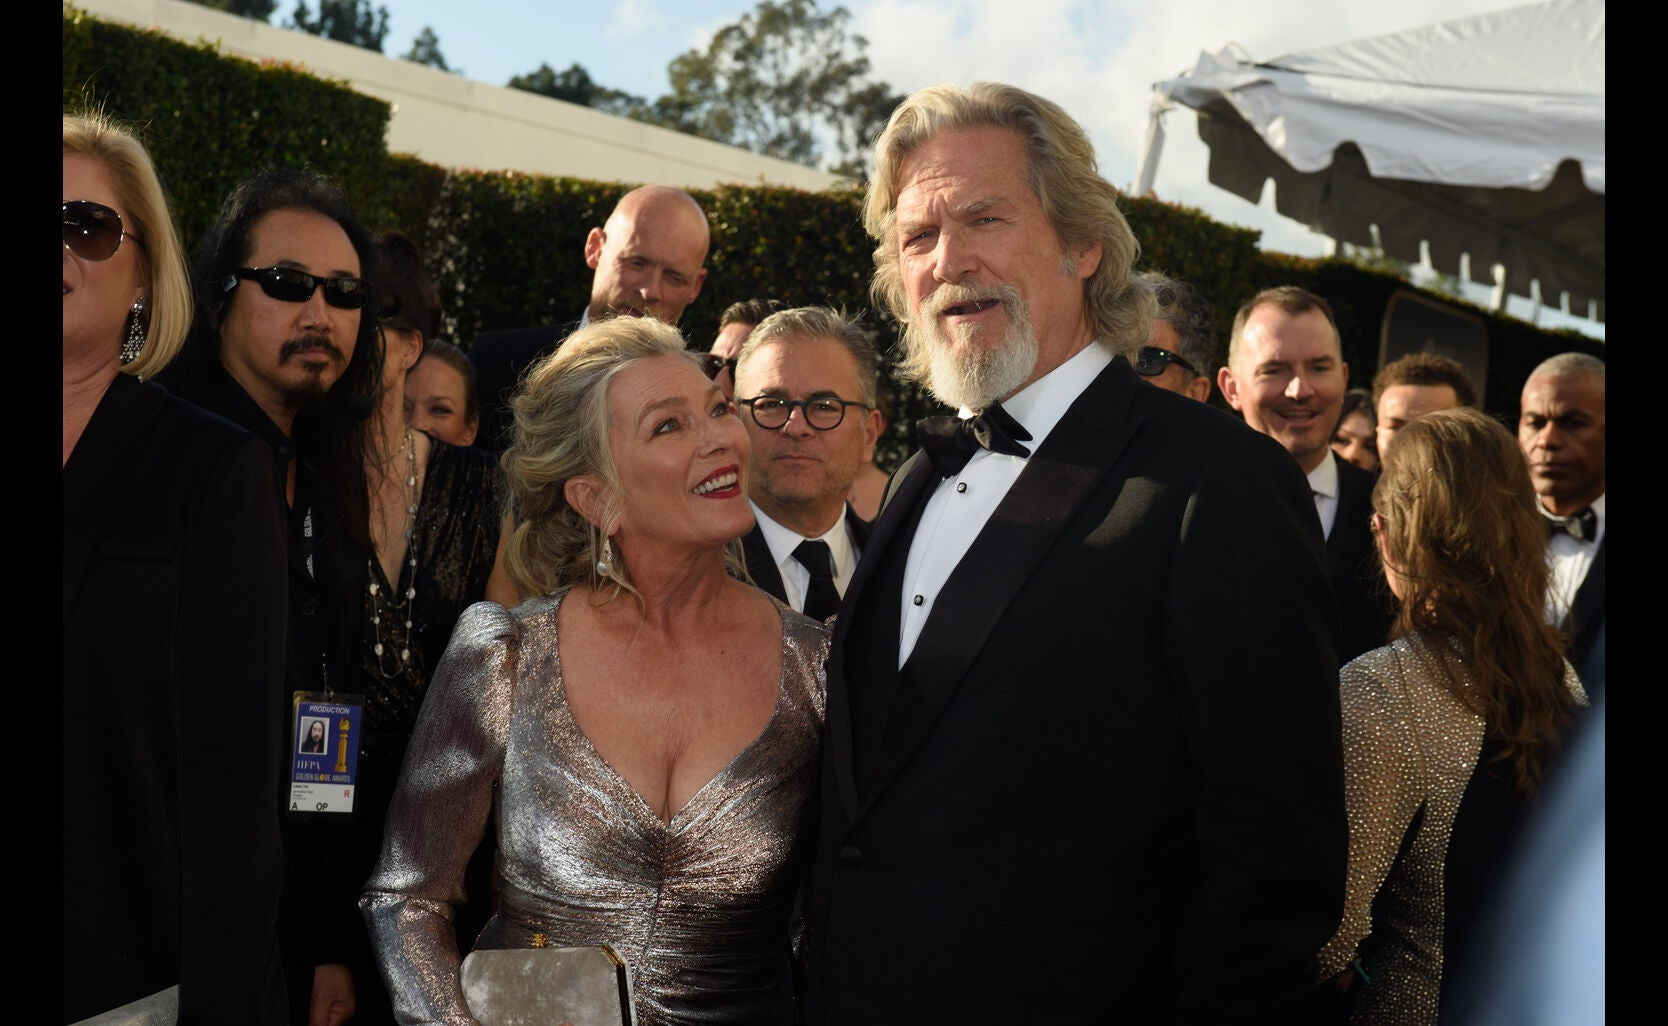 Jeff Bridges, Golden Globe winner